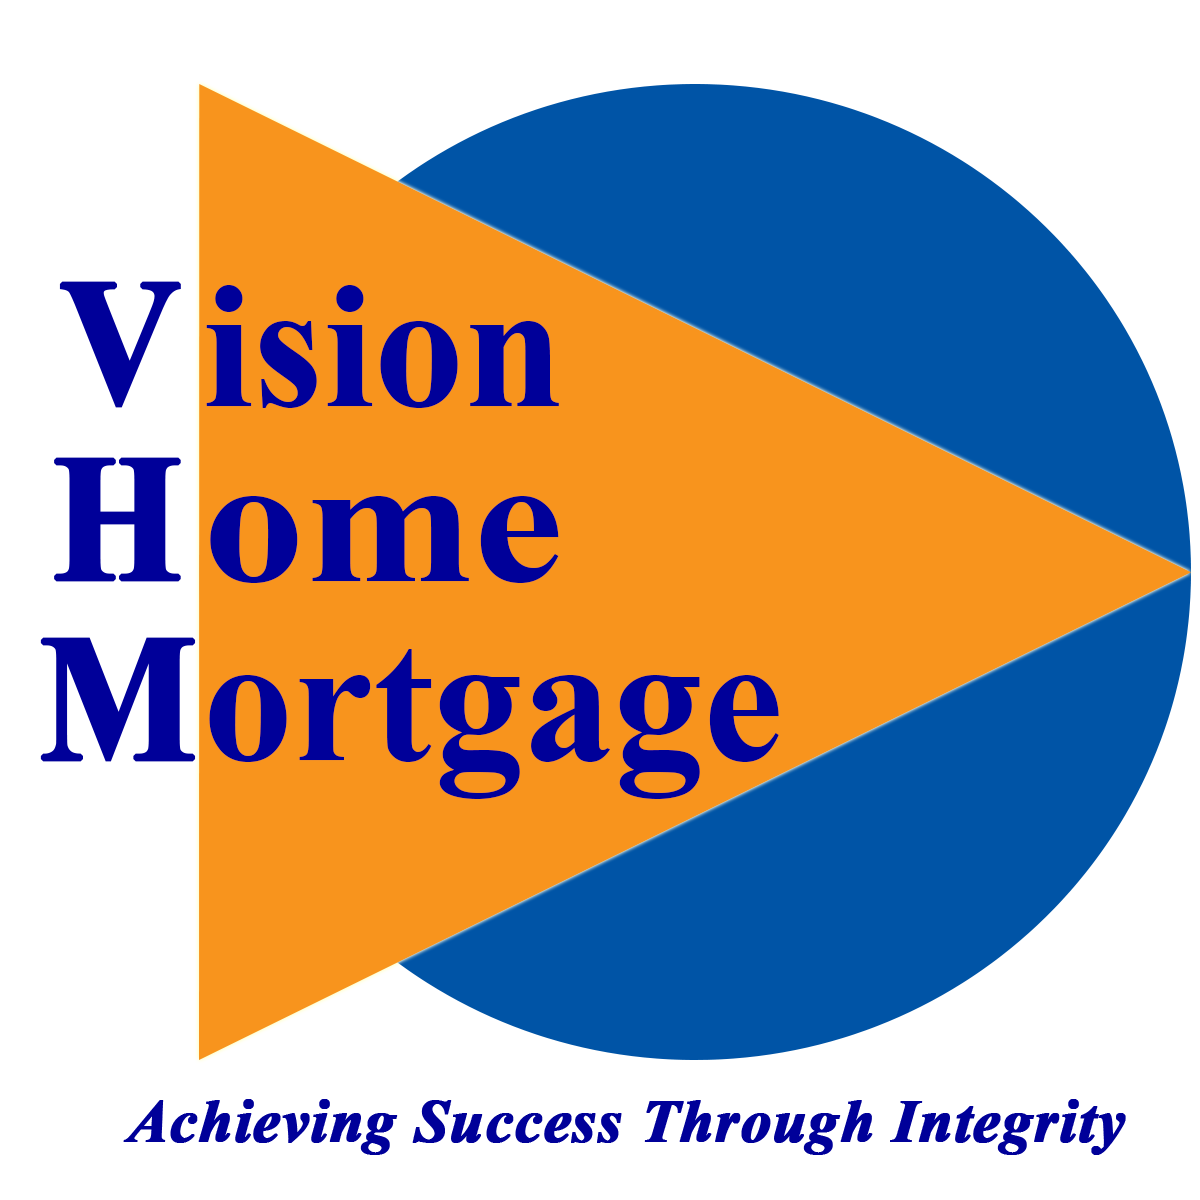 William Shappee - Vision Home Mortgage